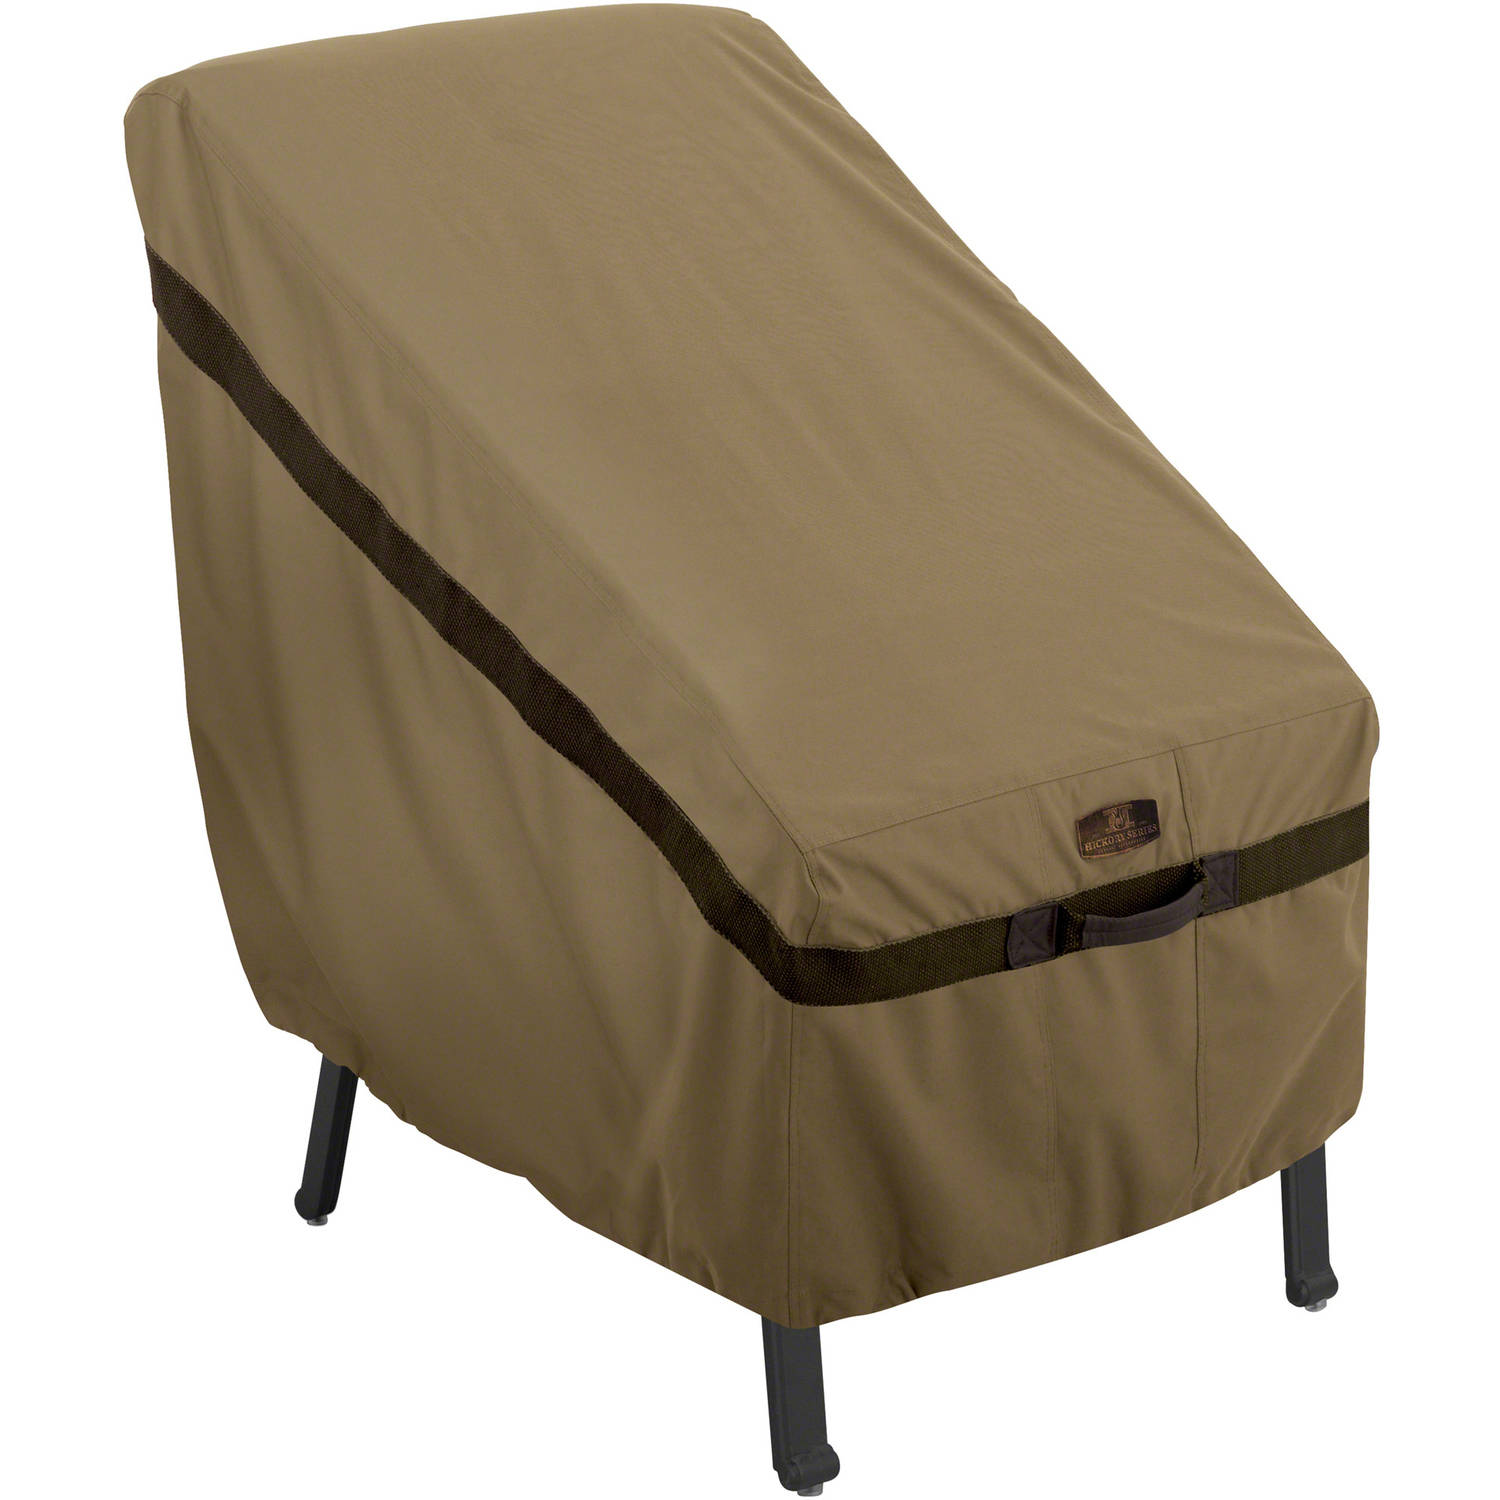 Classic Accessories Hickory Highback Chair Patio Furniture Storage Cover, Tan by Classic Accessories